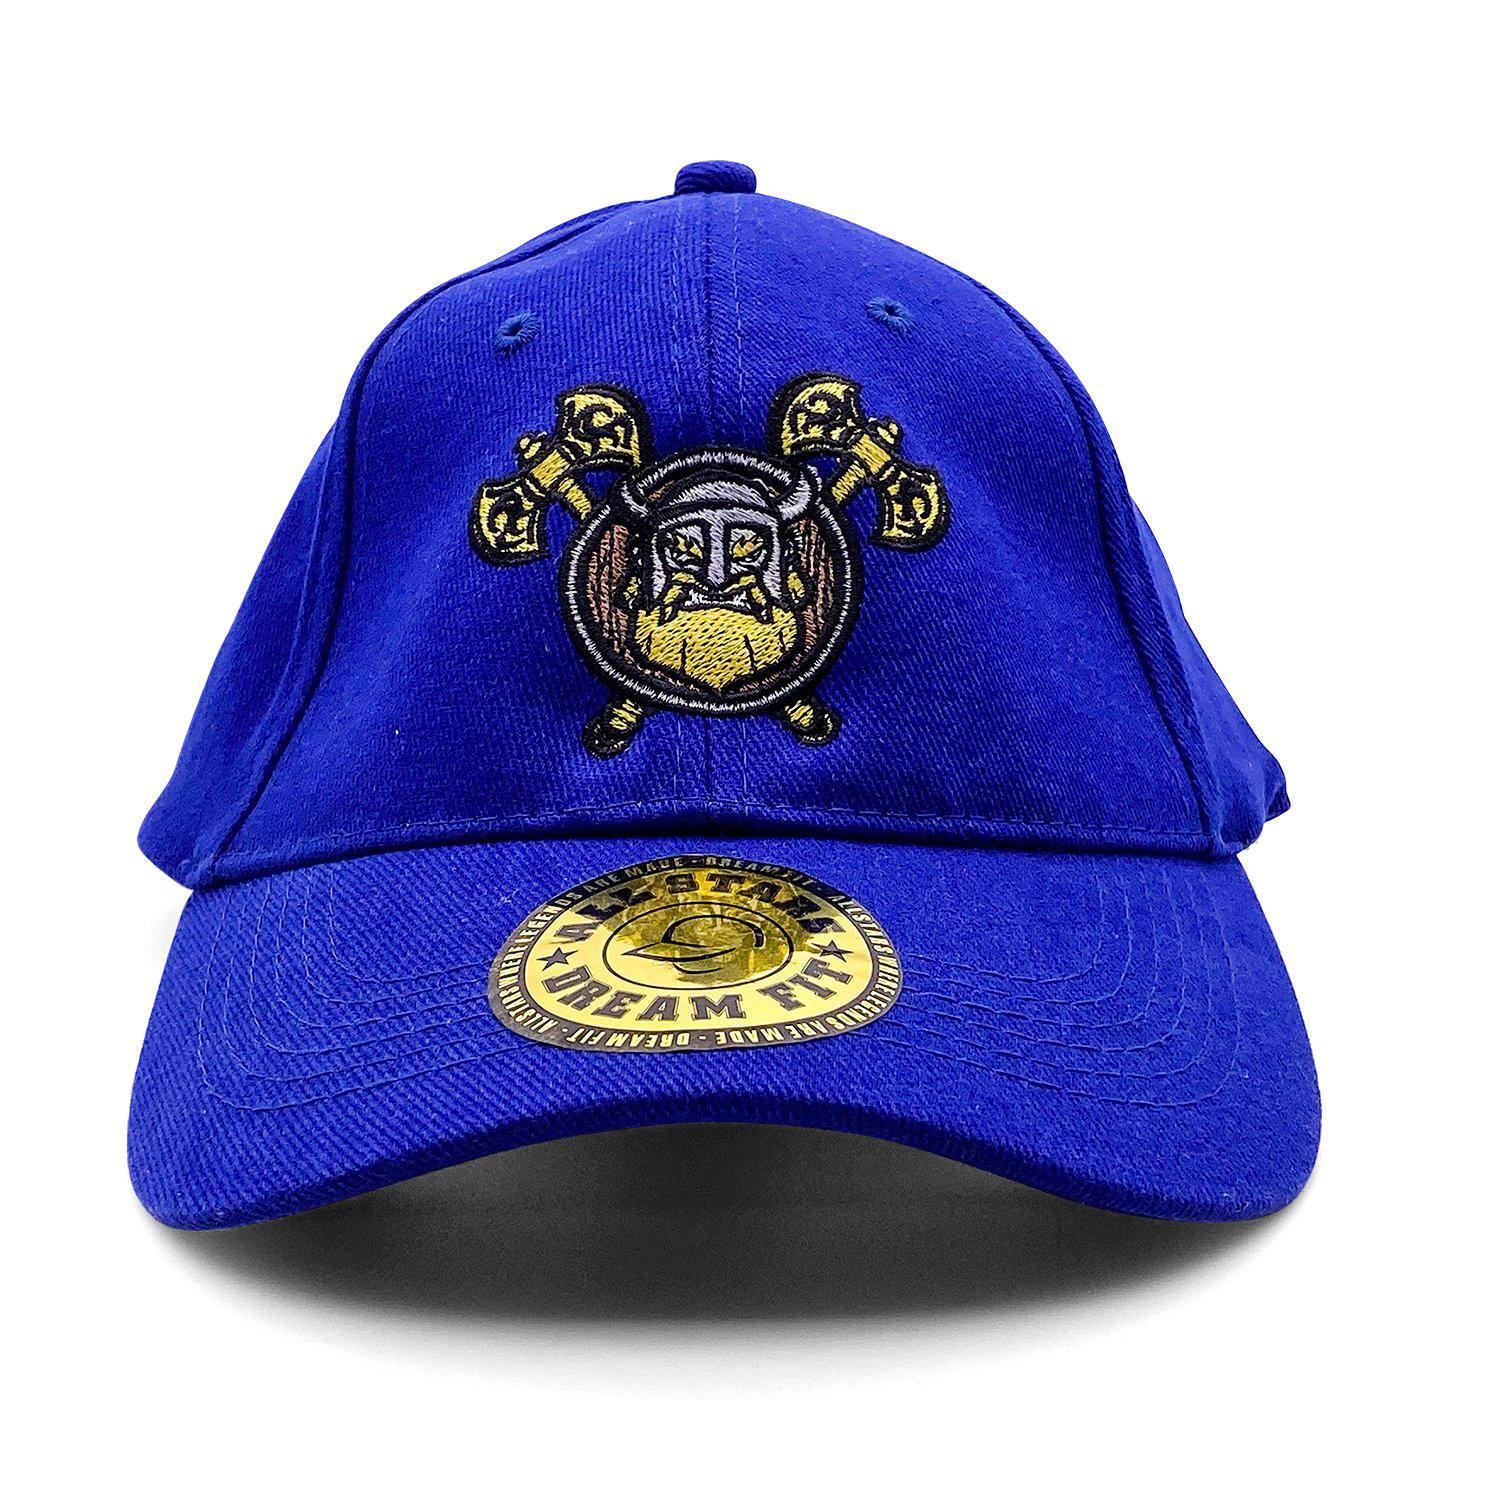 Norse Foundry Blue Fitted Hat